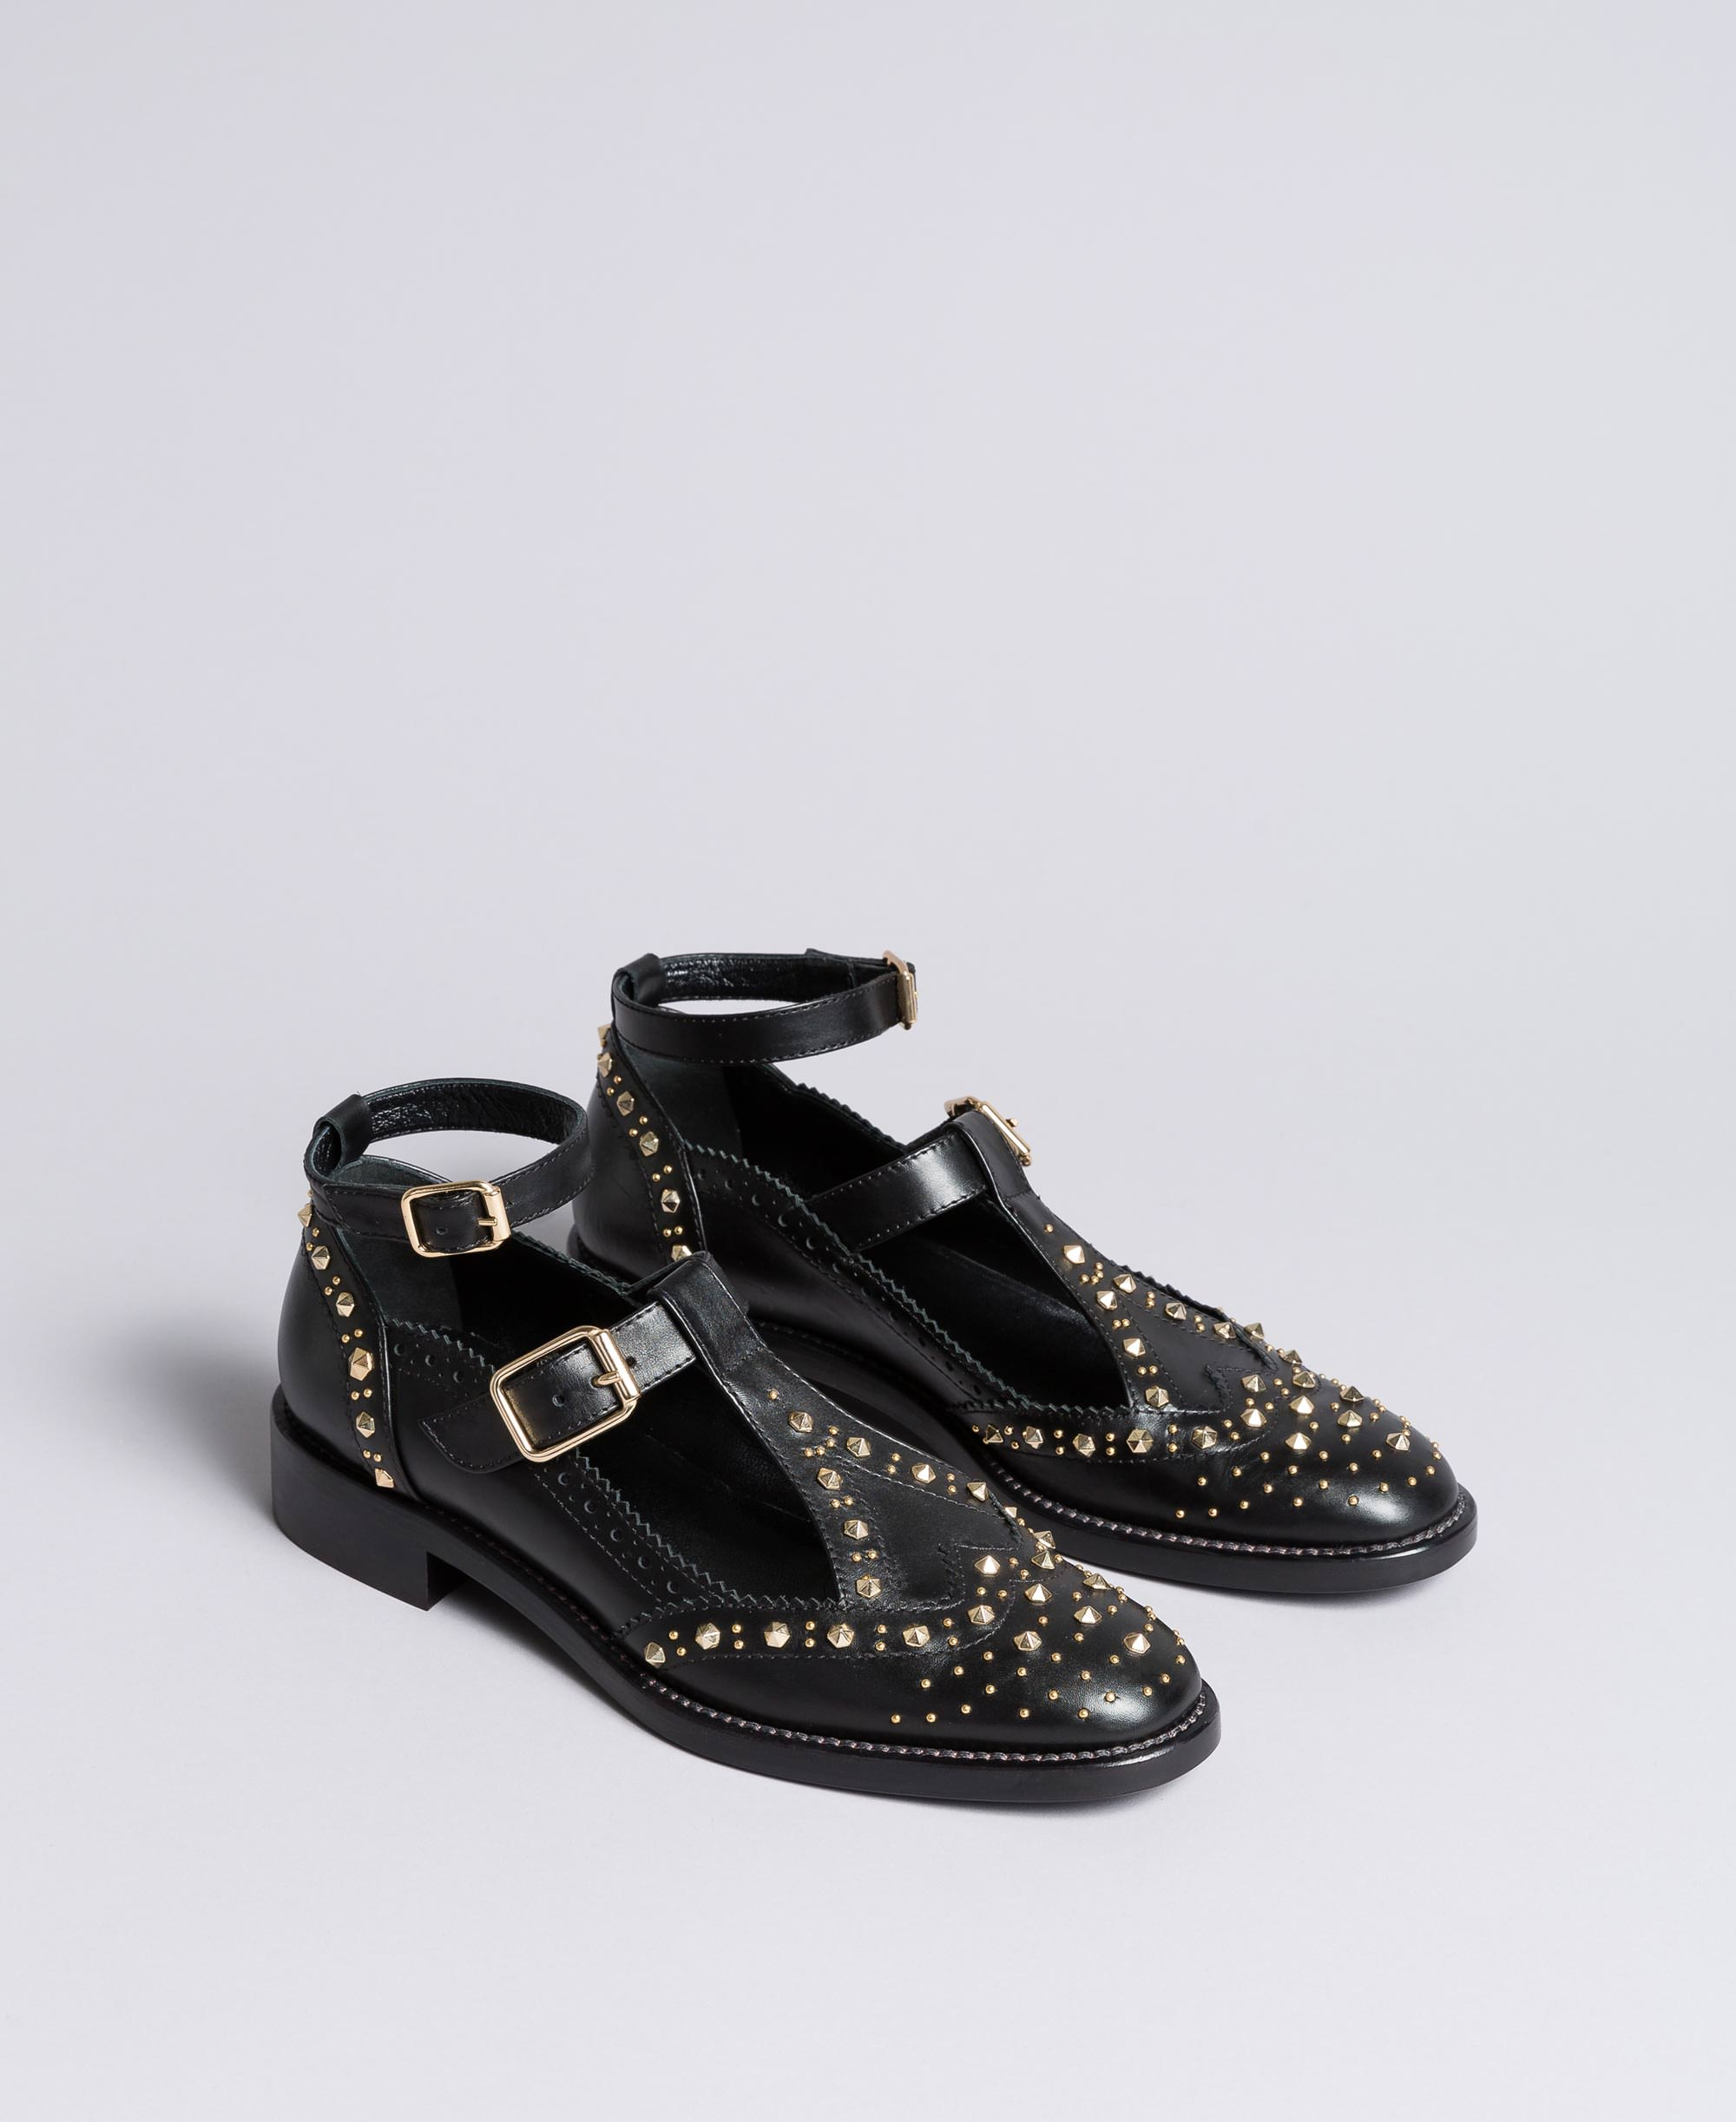 Cut-out leather shoes with studs